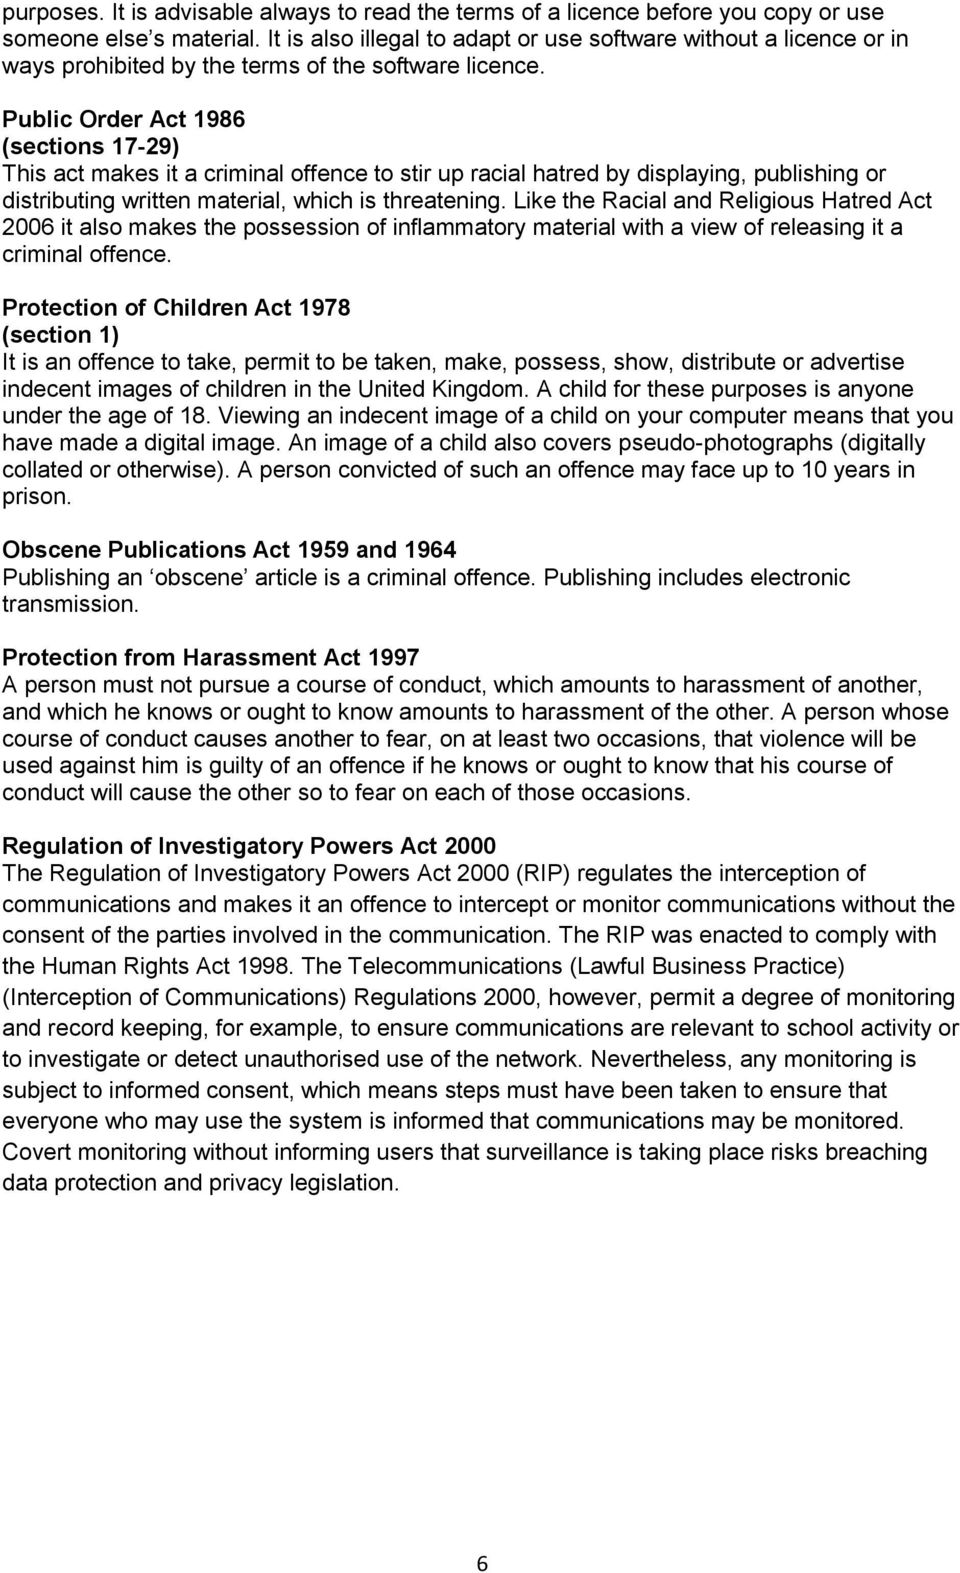 Public Order Act 1986 (sections 17-29) This act makes it a criminal offence to stir up racial hatred by displaying, publishing or distributing written material, which is threatening.